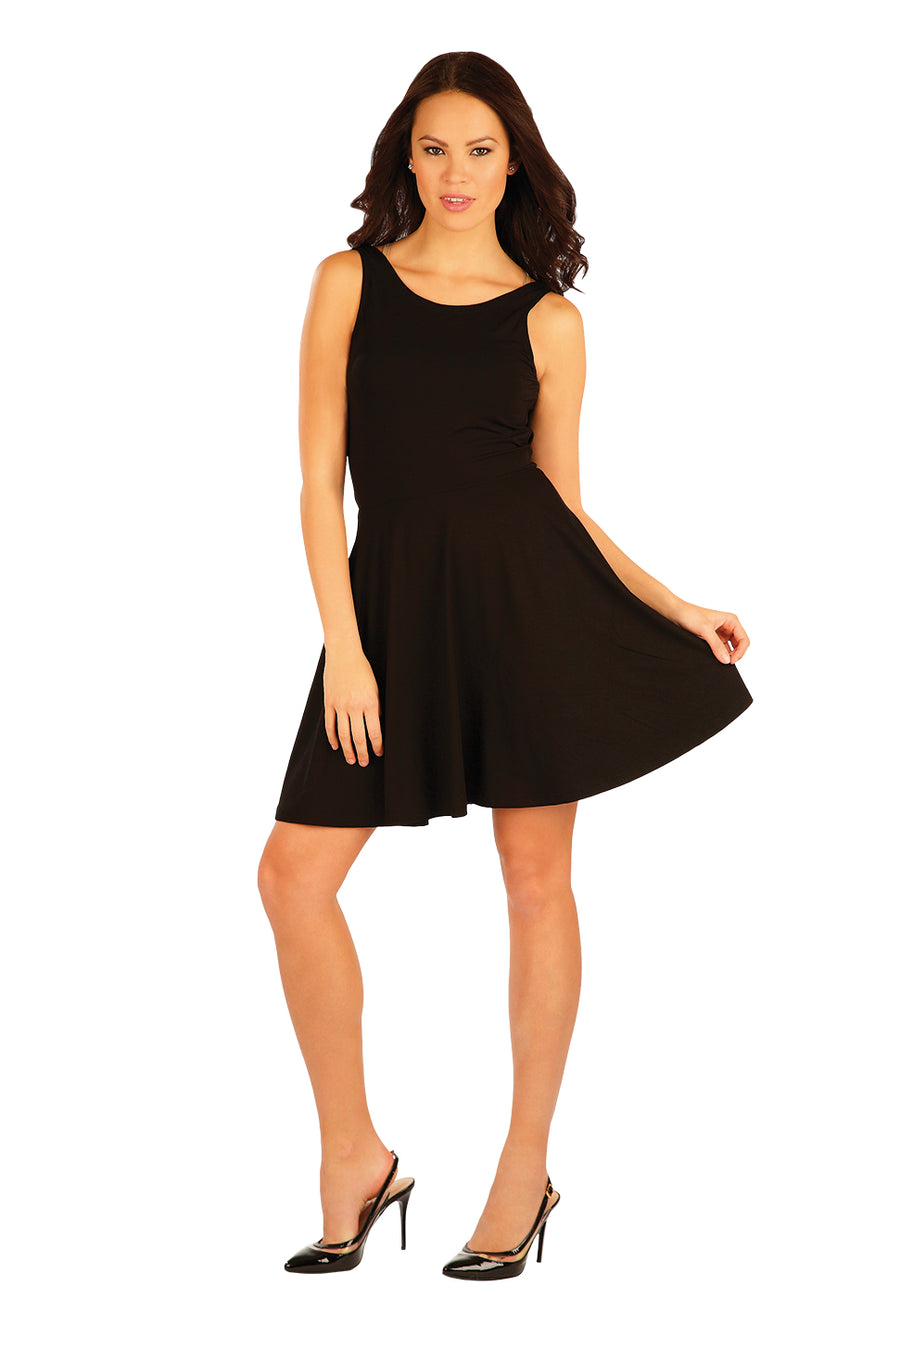 Women's Sleeveless Black Dress